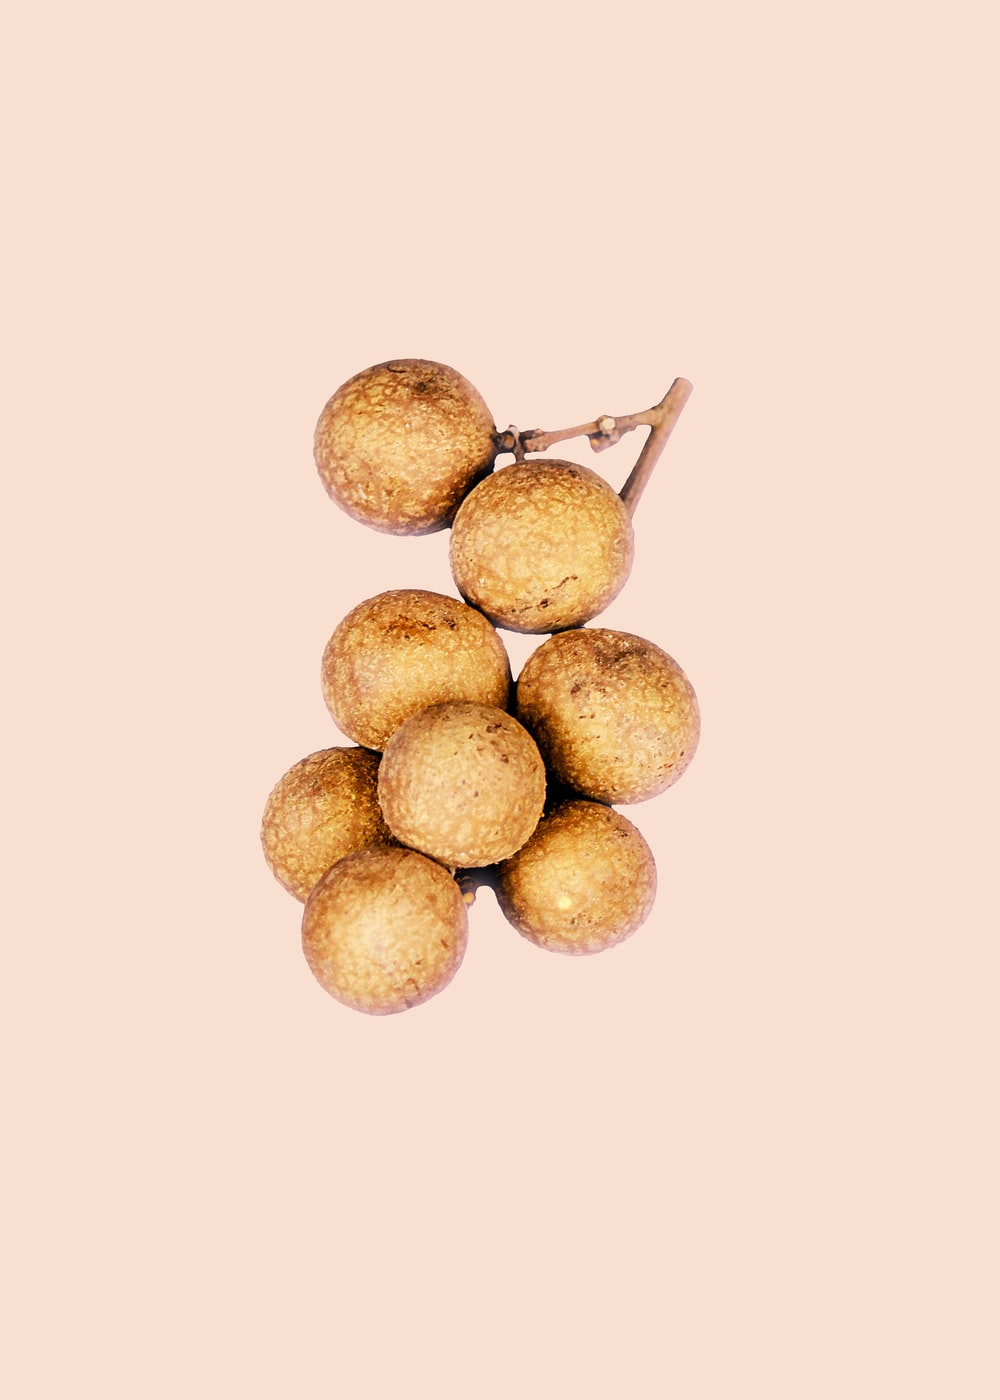 brown round fruit on white background